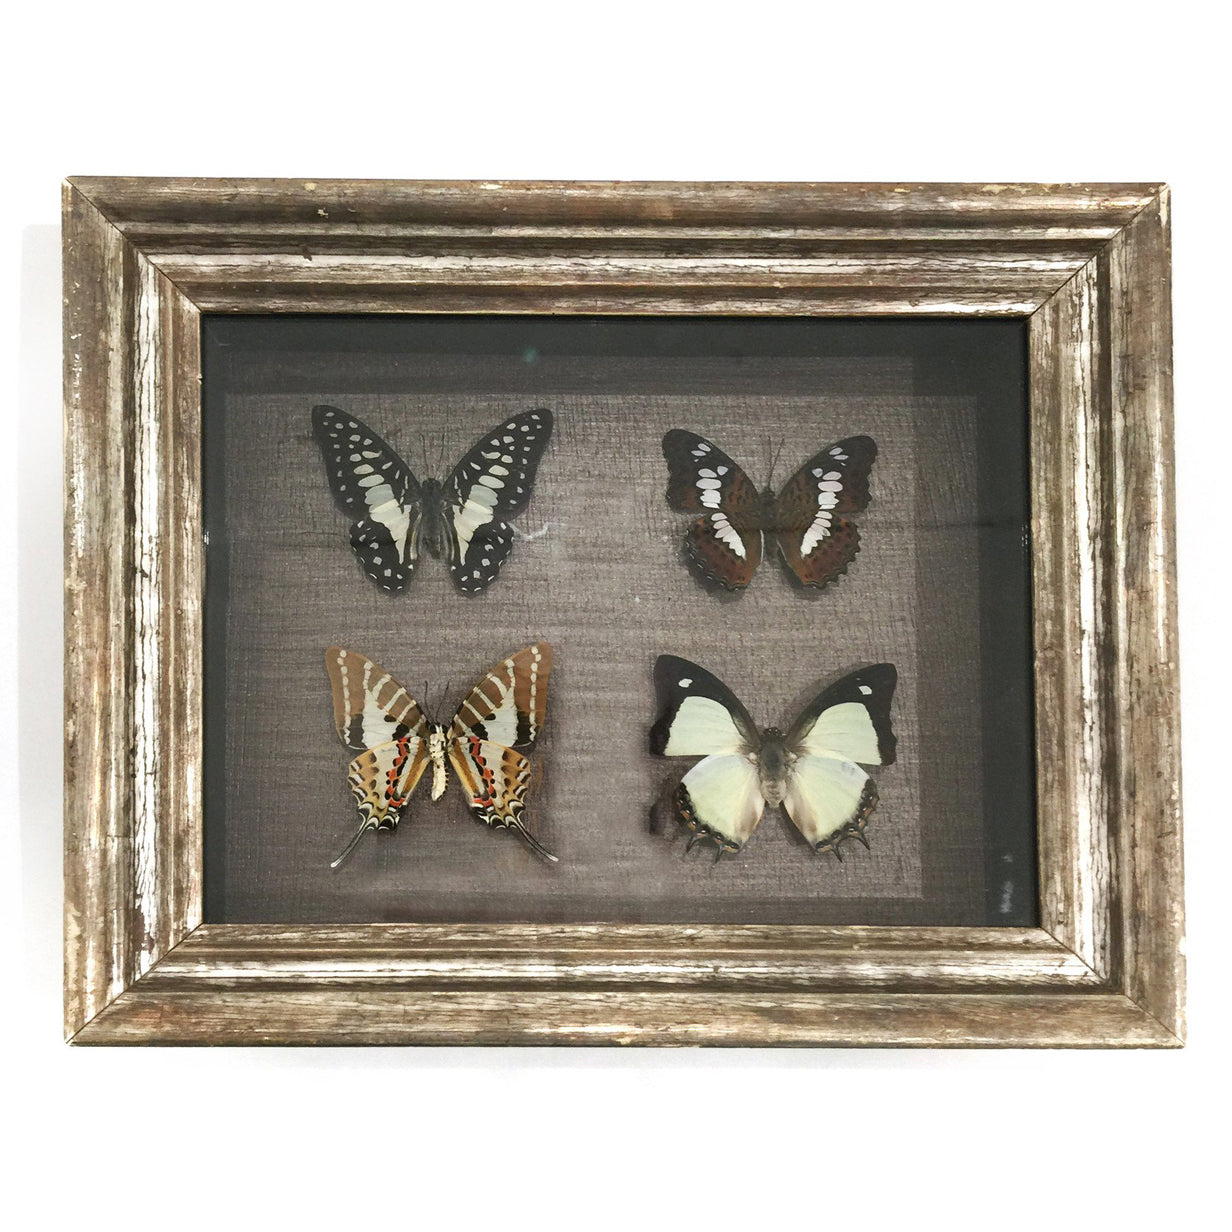 FRAMED BUTTERFLIES